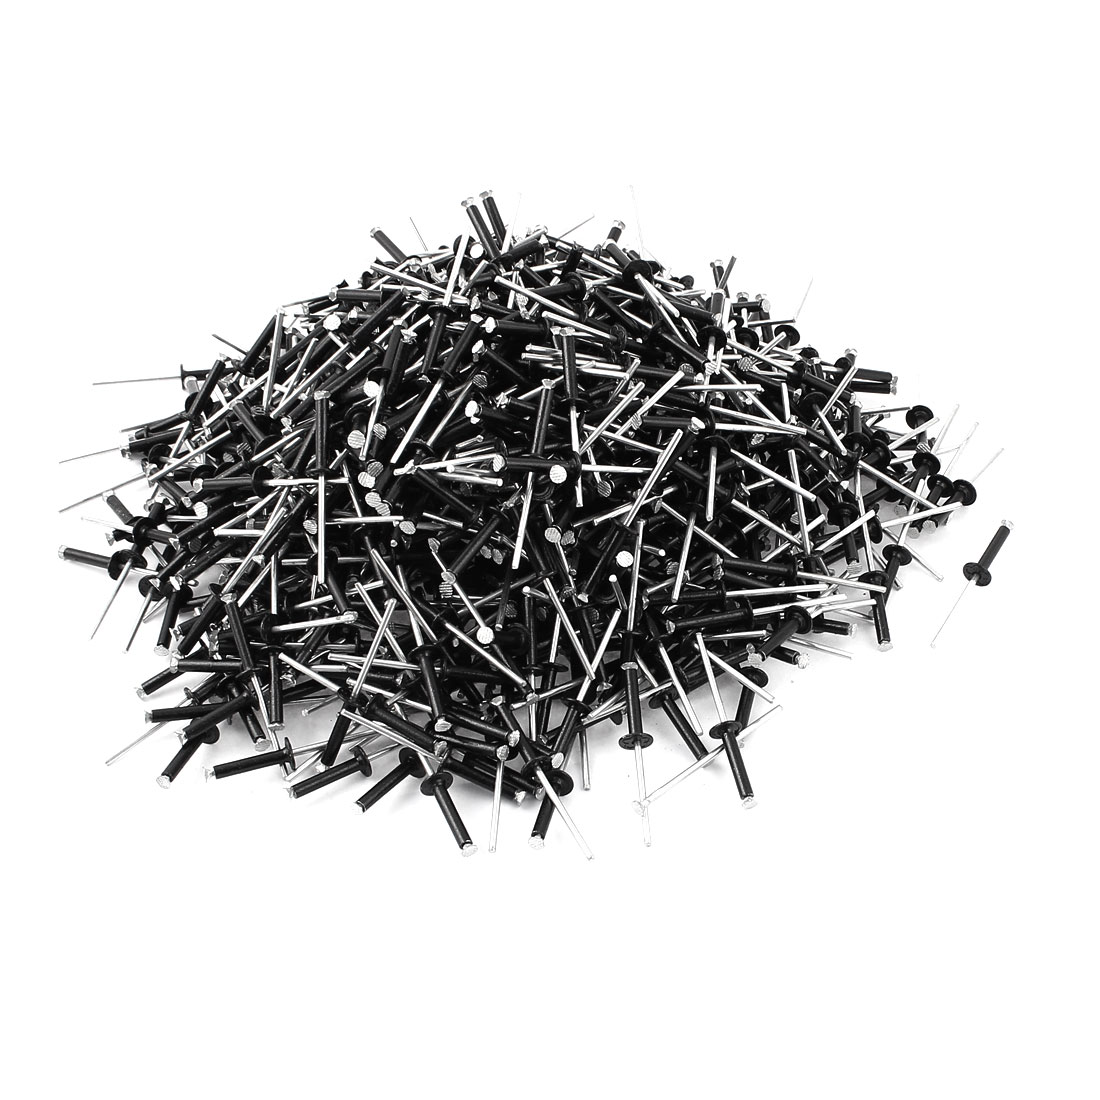 "1000 Pcs 1/8"" x 45/64"" Aluminum Alloy Open End Blind Pop Rivets Dome Head Black"